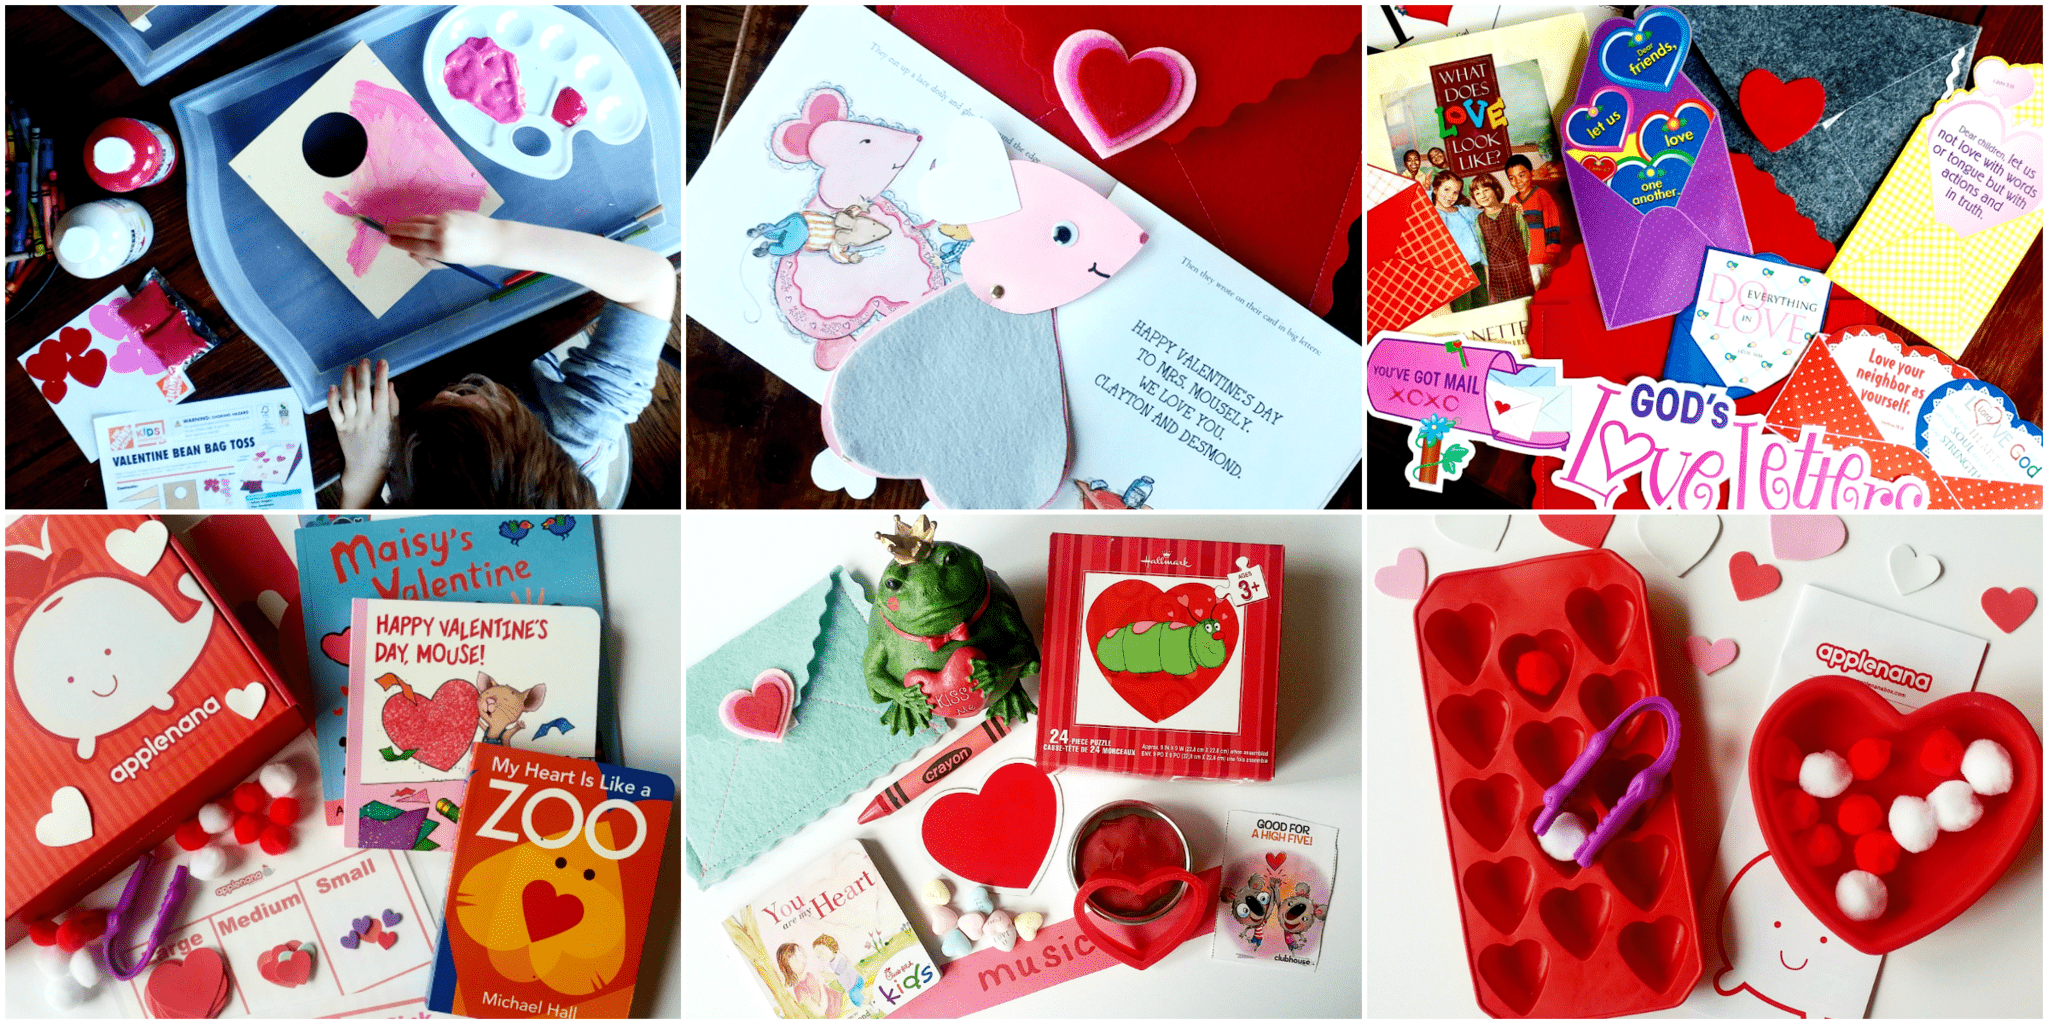 Valentine's Day Books and Other Activities for Kids by This Little Home of Mine